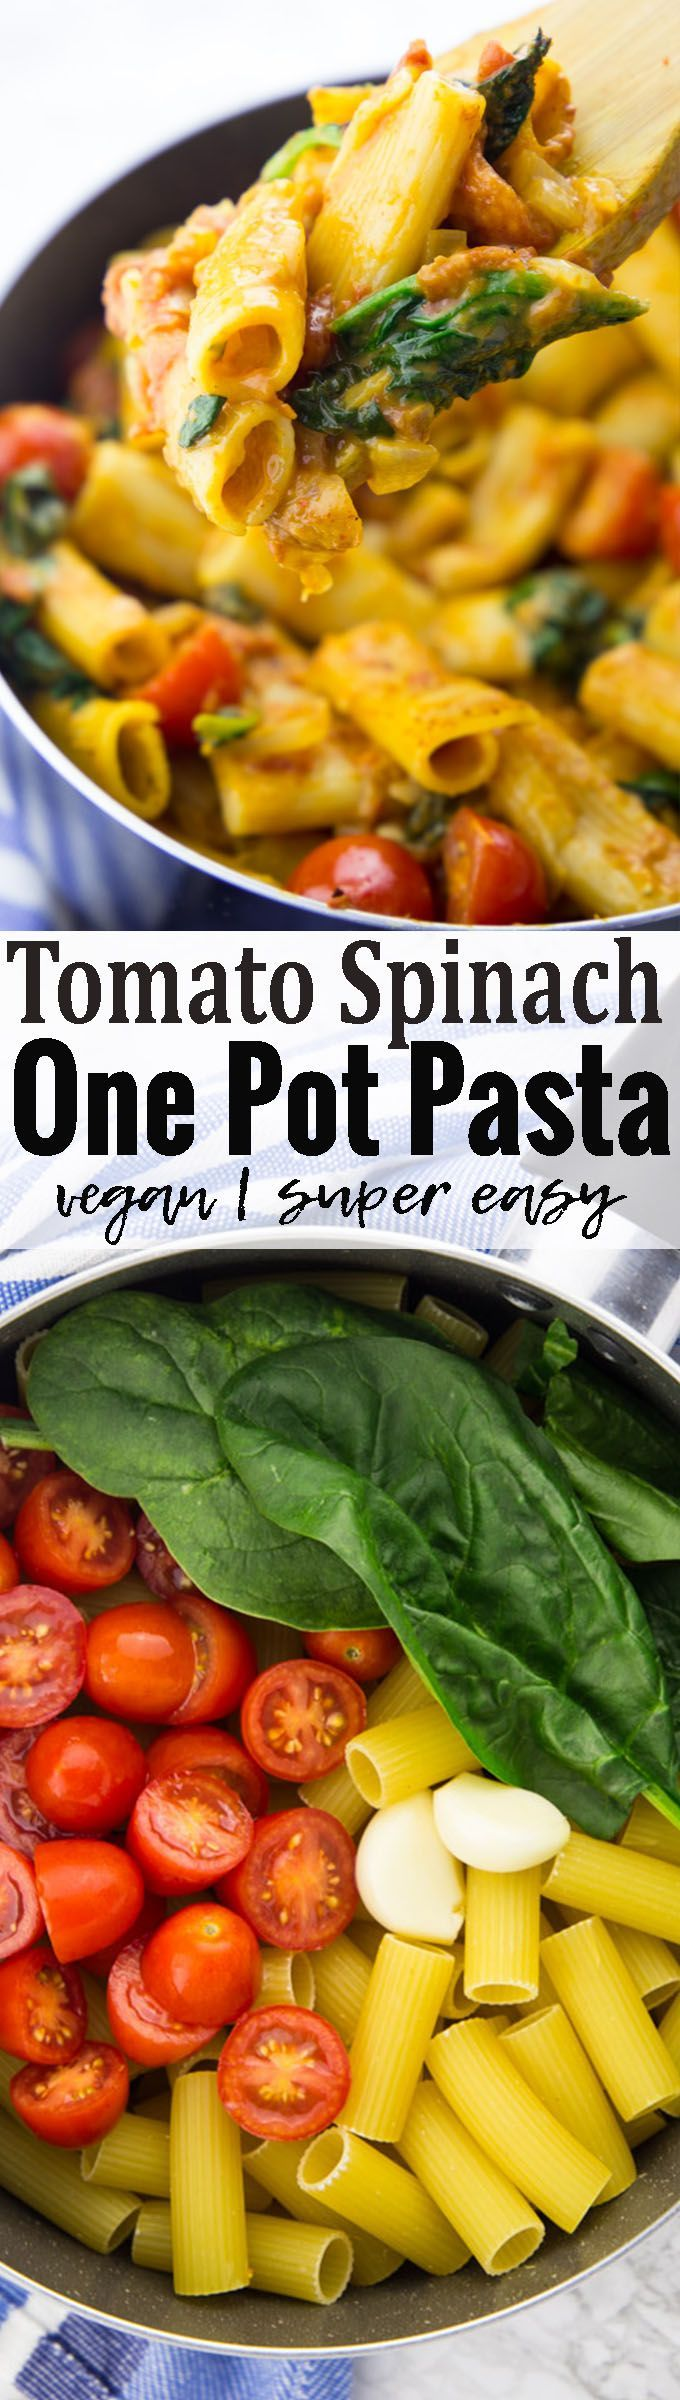 This vegan one pot pasta with spinach and tomatoes is super easy to make and so incredibly creamy and delicious! It's one of my favorite vegan dinners for busy weeknights! Find more vegan recipes at veganheaven.org <3